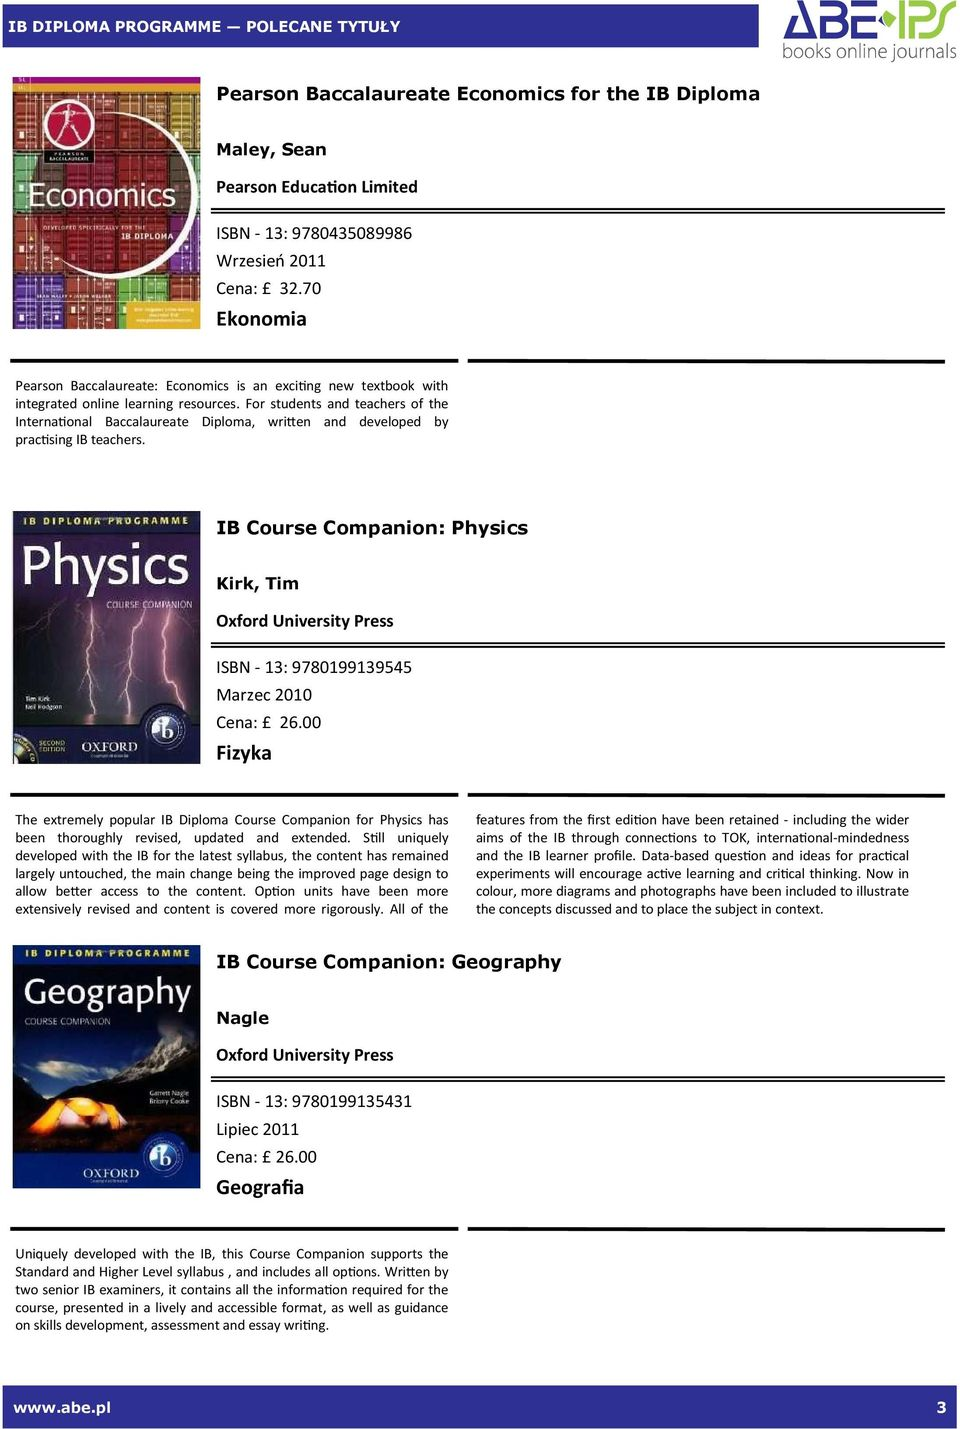 For students and teachers of the Interna#onal Baccalaureate Diploma, wrien and developed by prac#sing IB teachers. IB Course Companion: Physics Kirk, Tim ISBN - 13: 9780199139545 2010 Cena: 26.